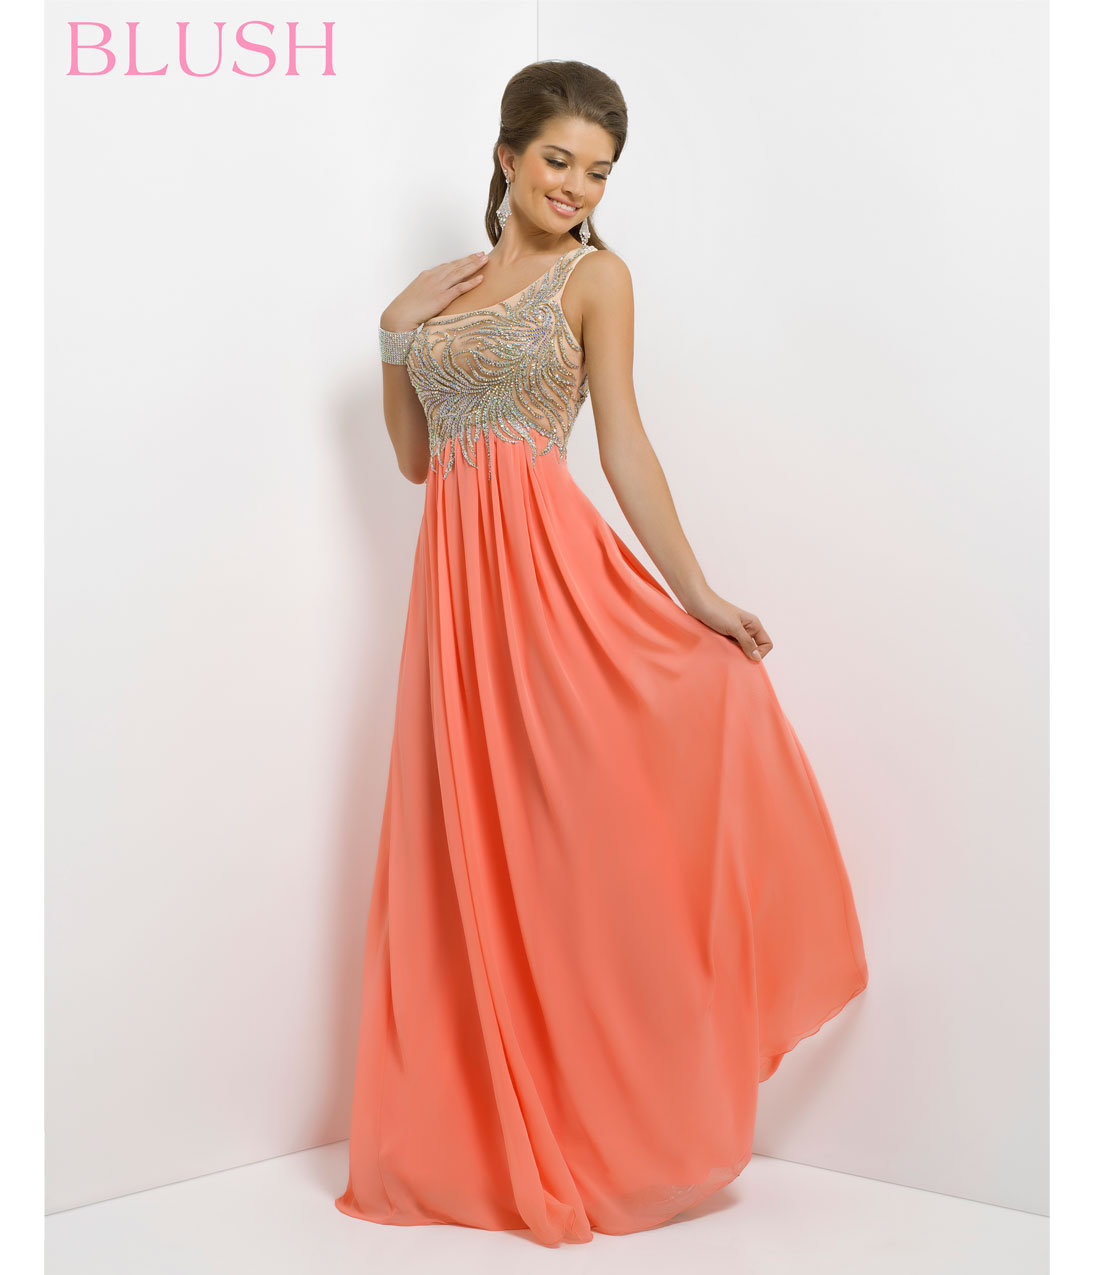 PRE ORDER Blush 2014 Prom Dresses from Unique Vintage